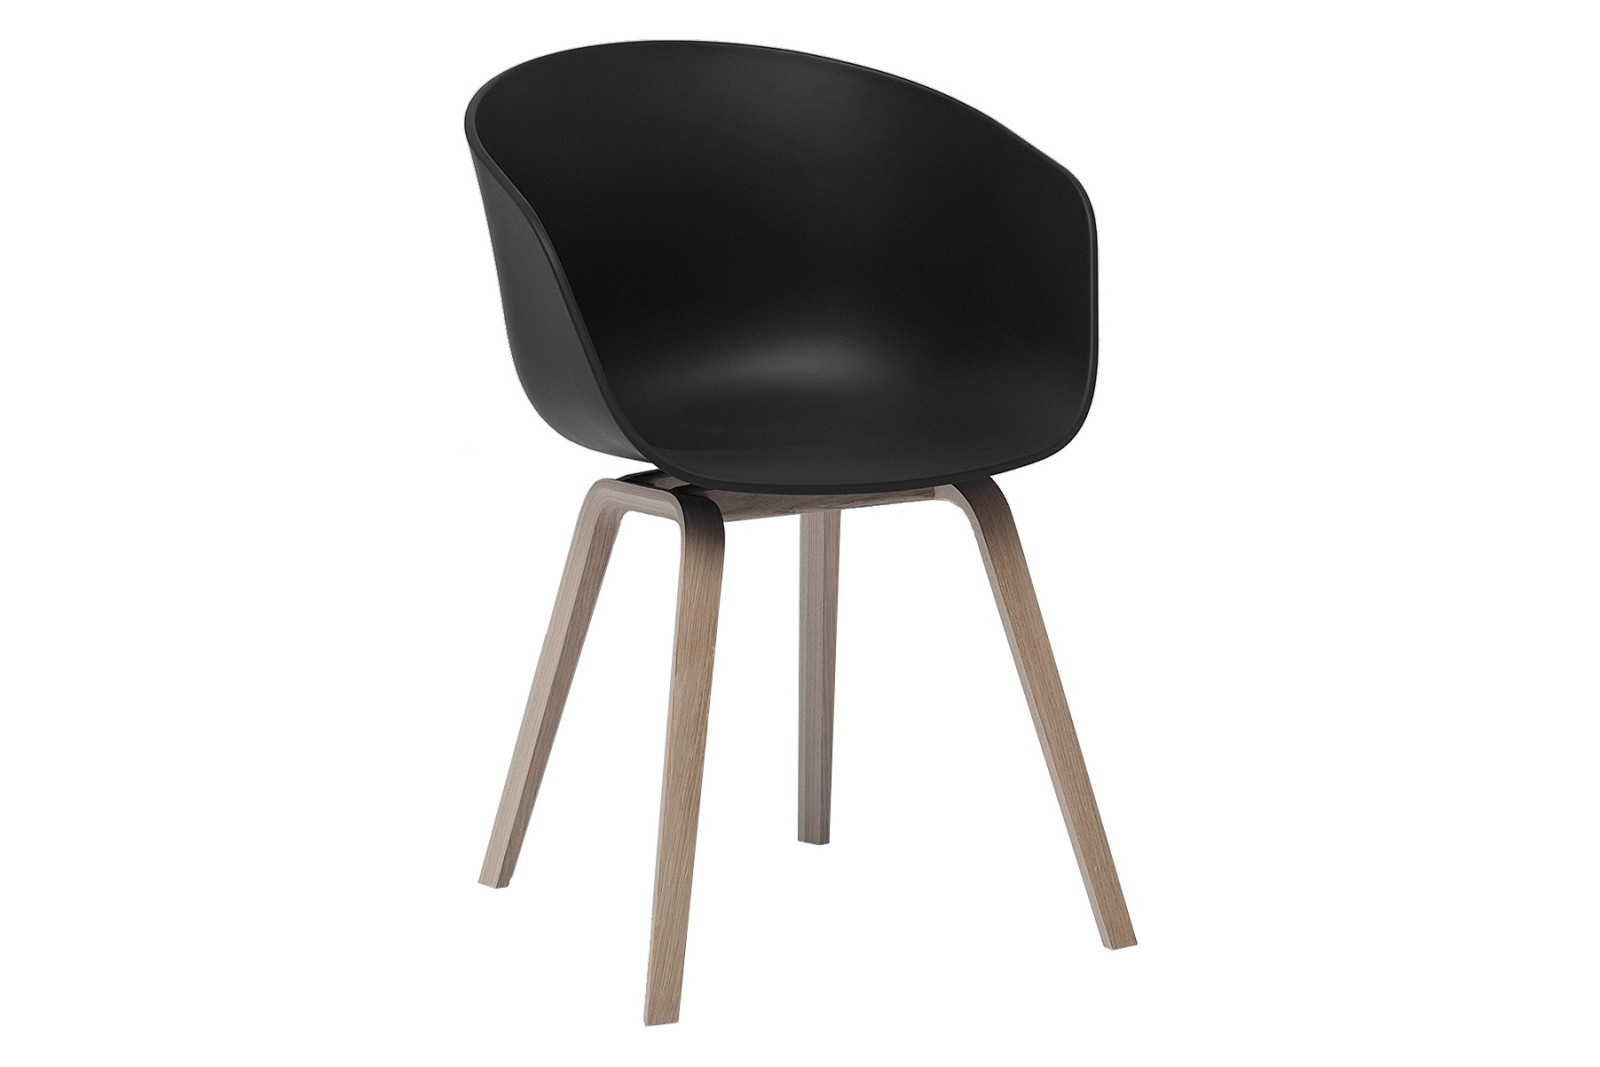 About A Chair AAC22 Black Seat, Soap Treated Oak Base